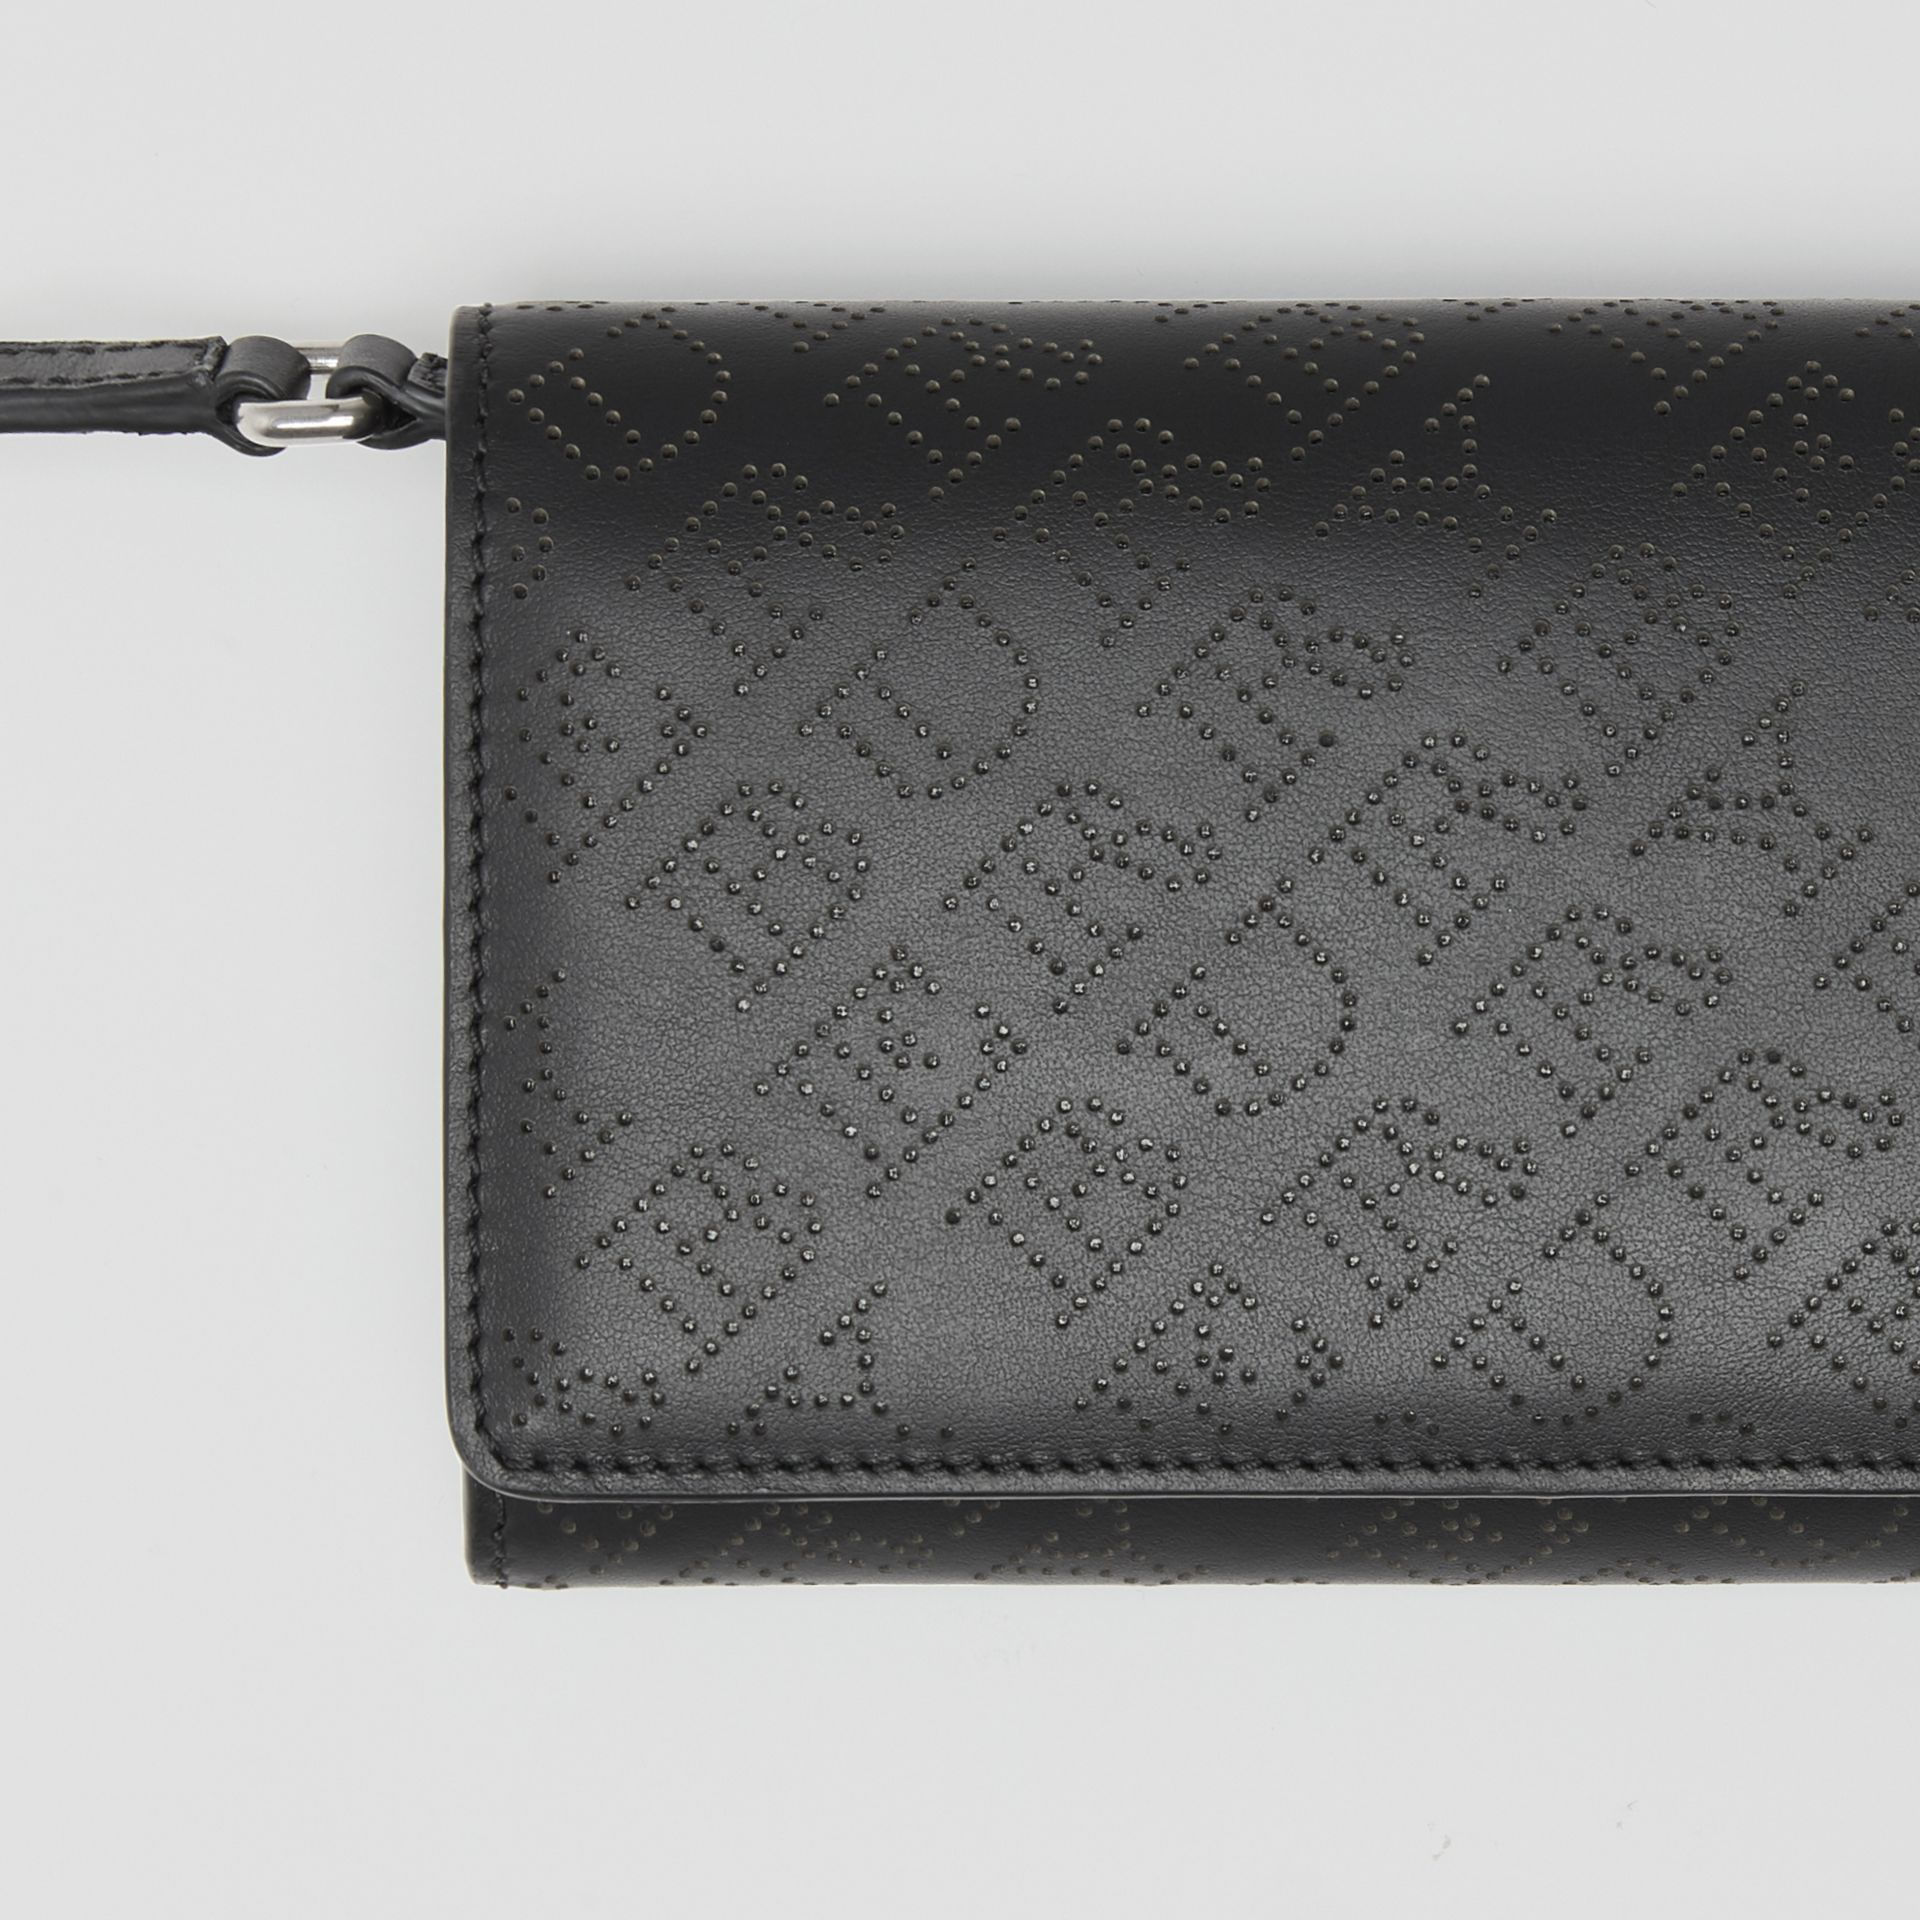 Perforated Logo Leather Wallet with Detachable Strap in Black - Women | Burberry Singapore - gallery image 1